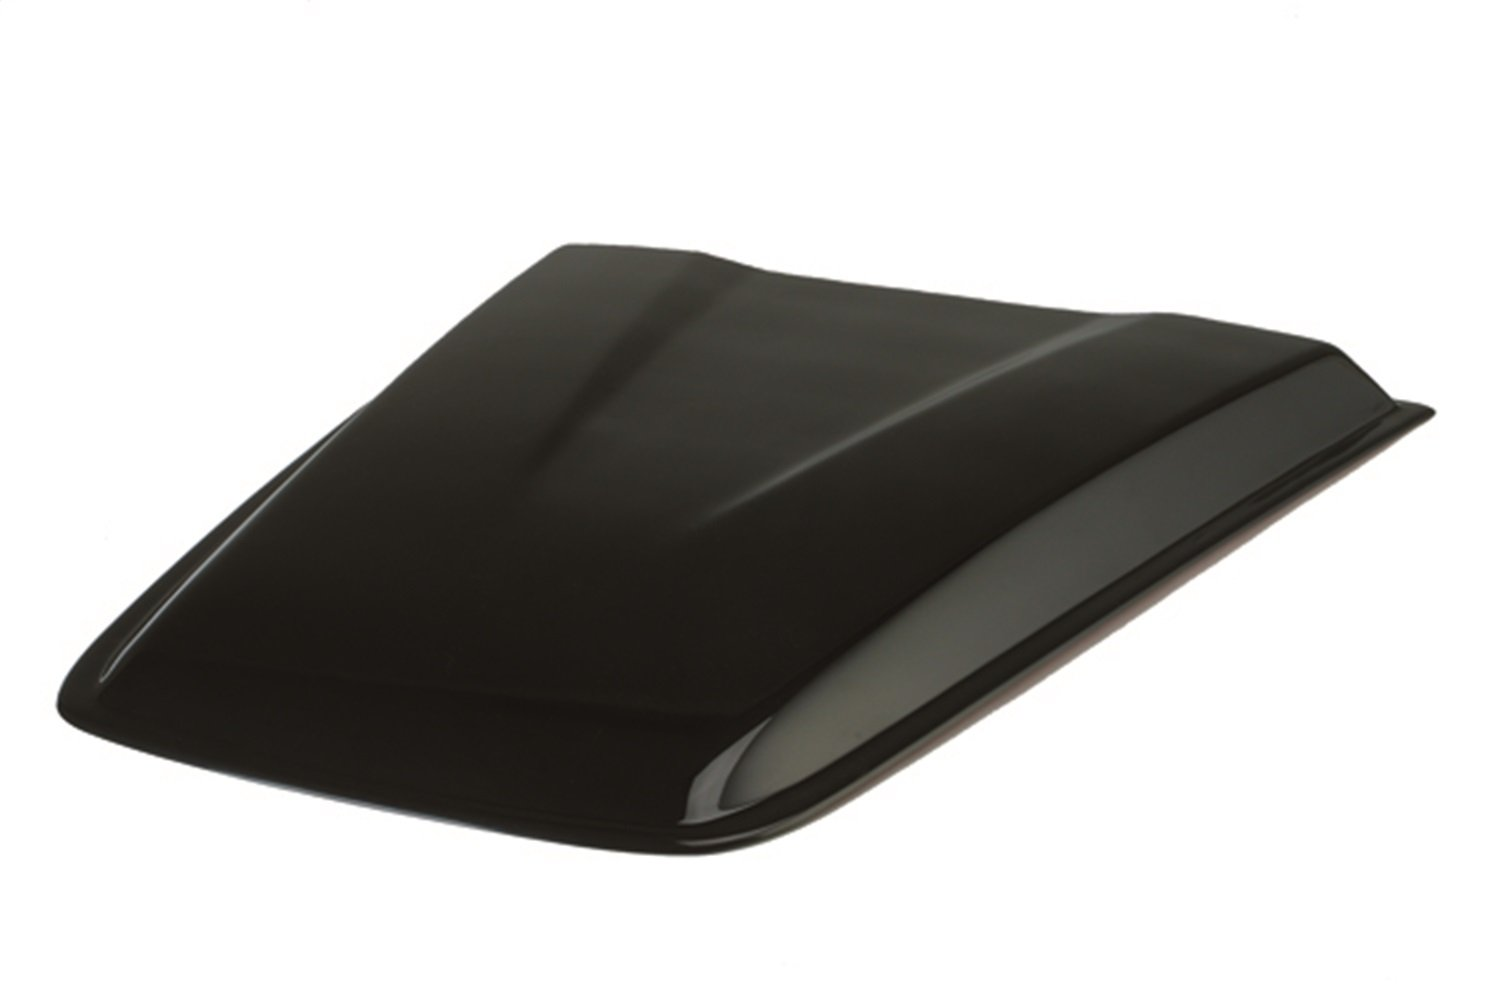 Auto Ventshade 80005 Truck Cowl Induction Hood Scoop with Smooth Black Finish